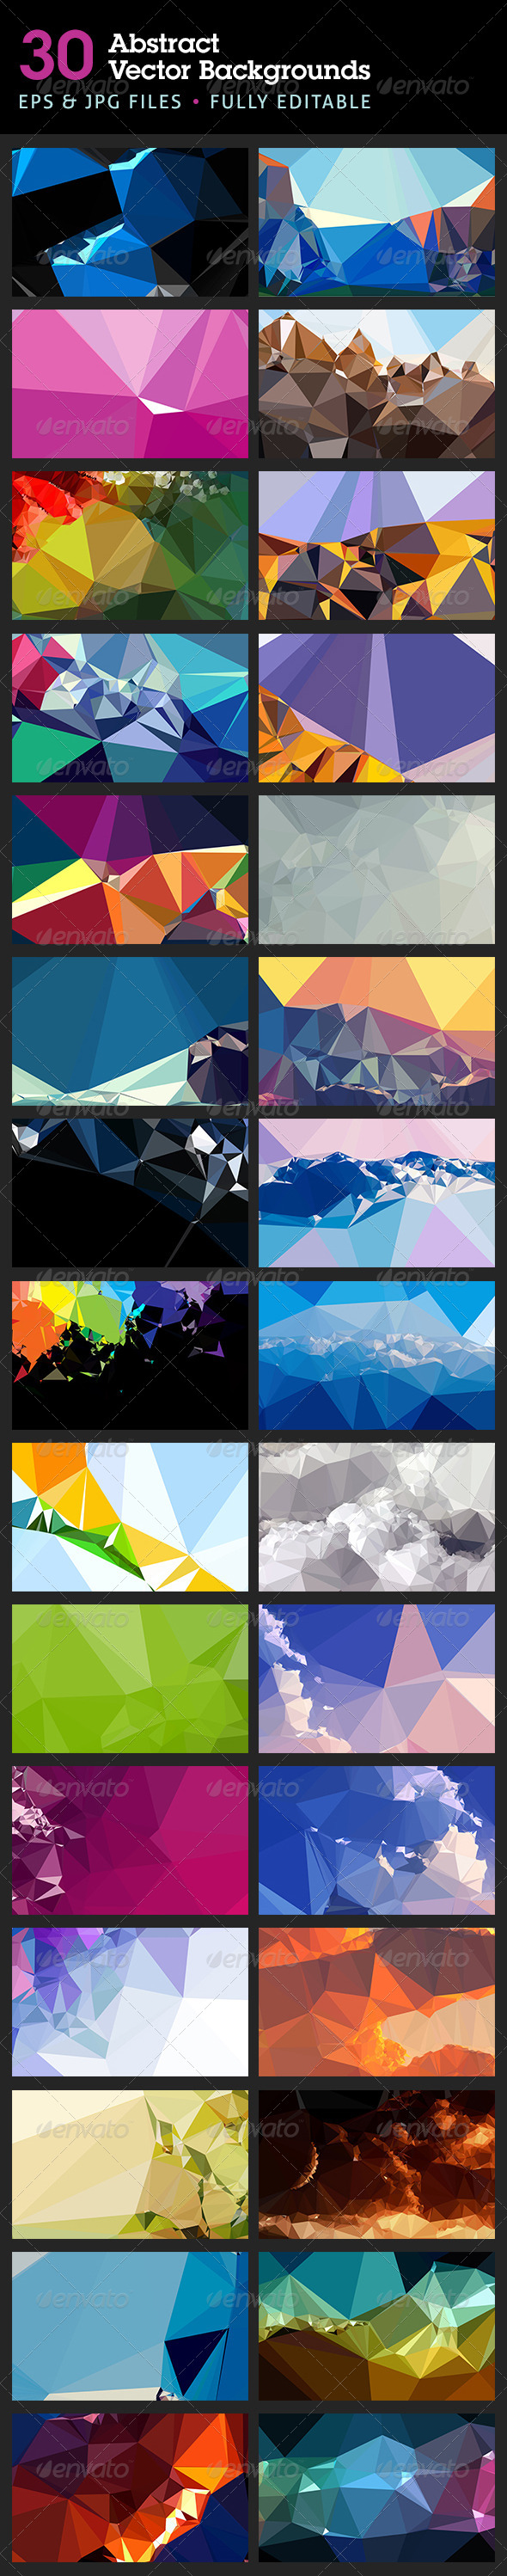 Abstract Backgrounds in Vector Format - Backgrounds Decorative